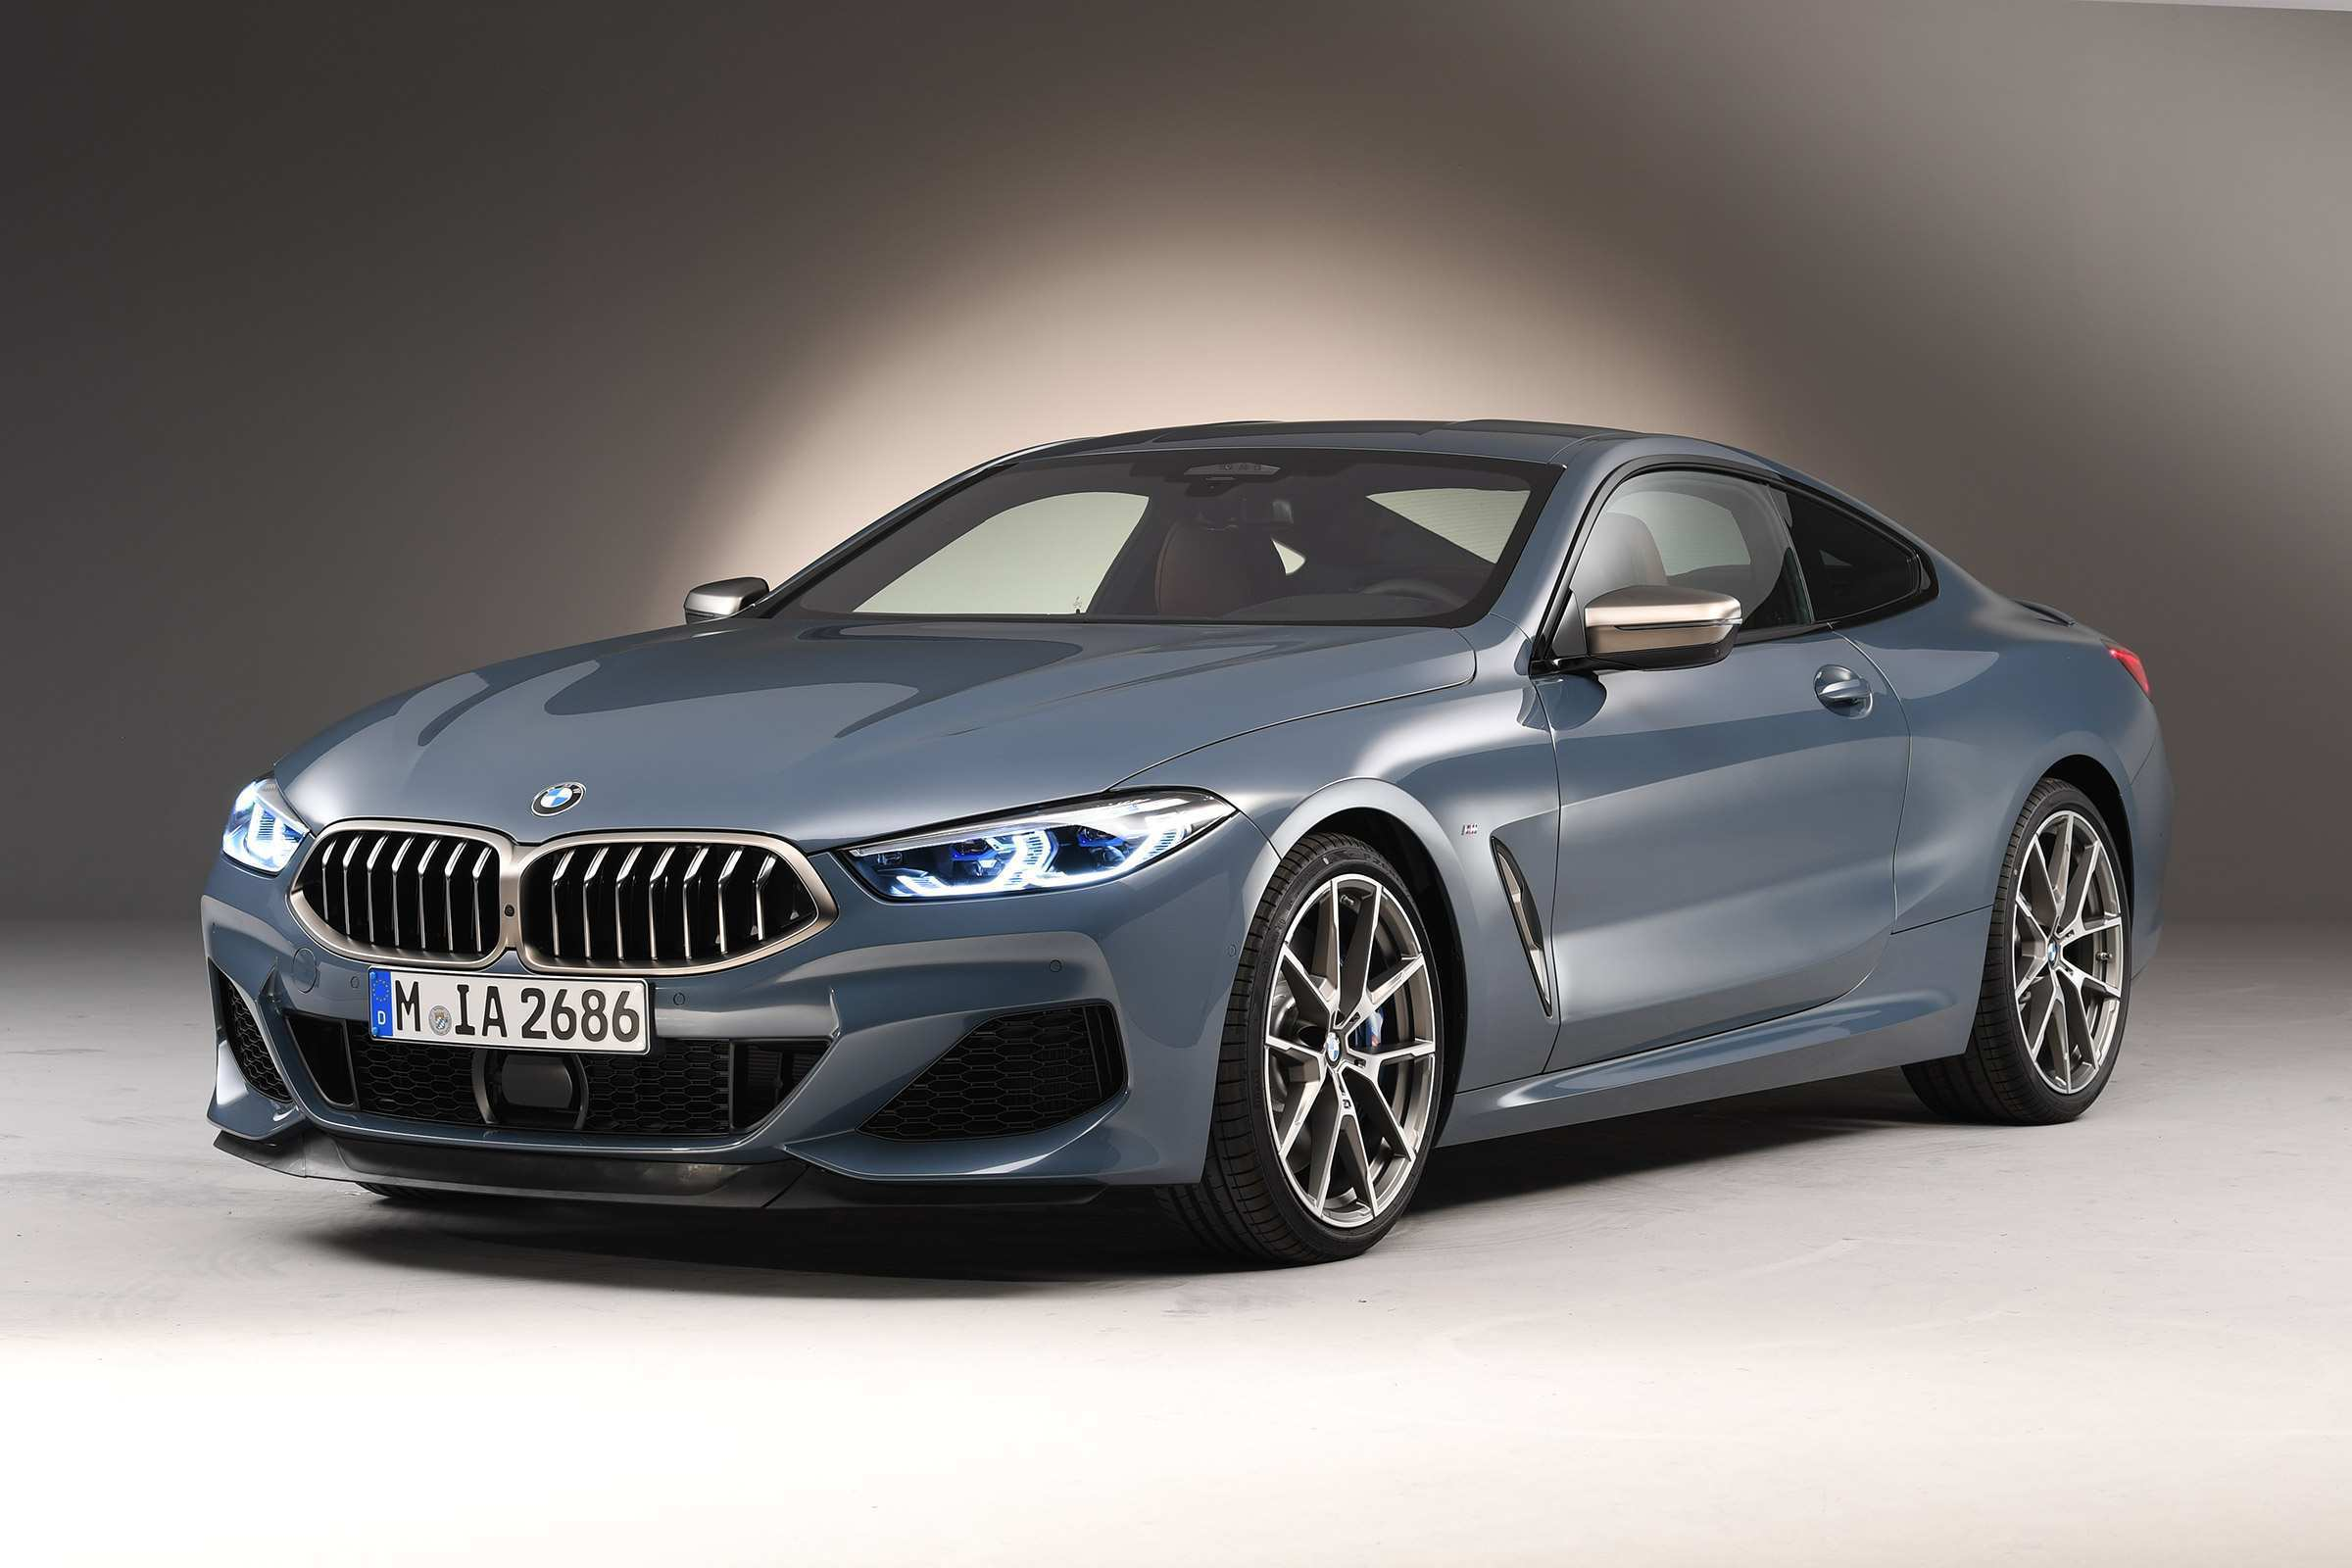 88 Great The Bmw Wentworth 2019 Spesification Redesign for The Bmw Wentworth 2019 Spesification